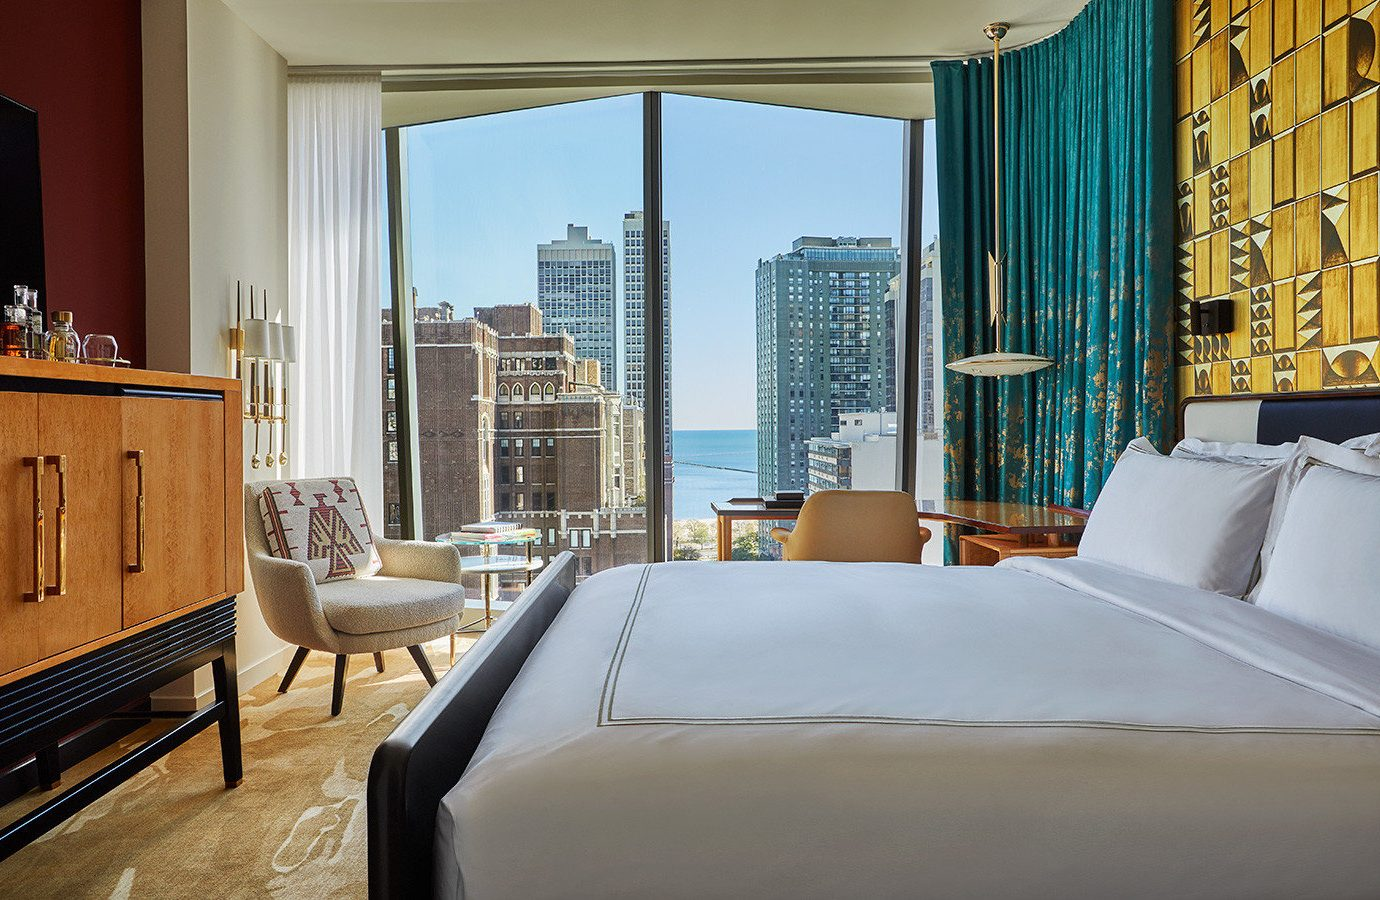 Road Trips Trip Ideas room Suite interior design window wall Bedroom hotel real estate window treatment condominium window covering ceiling curtain penthouse apartment